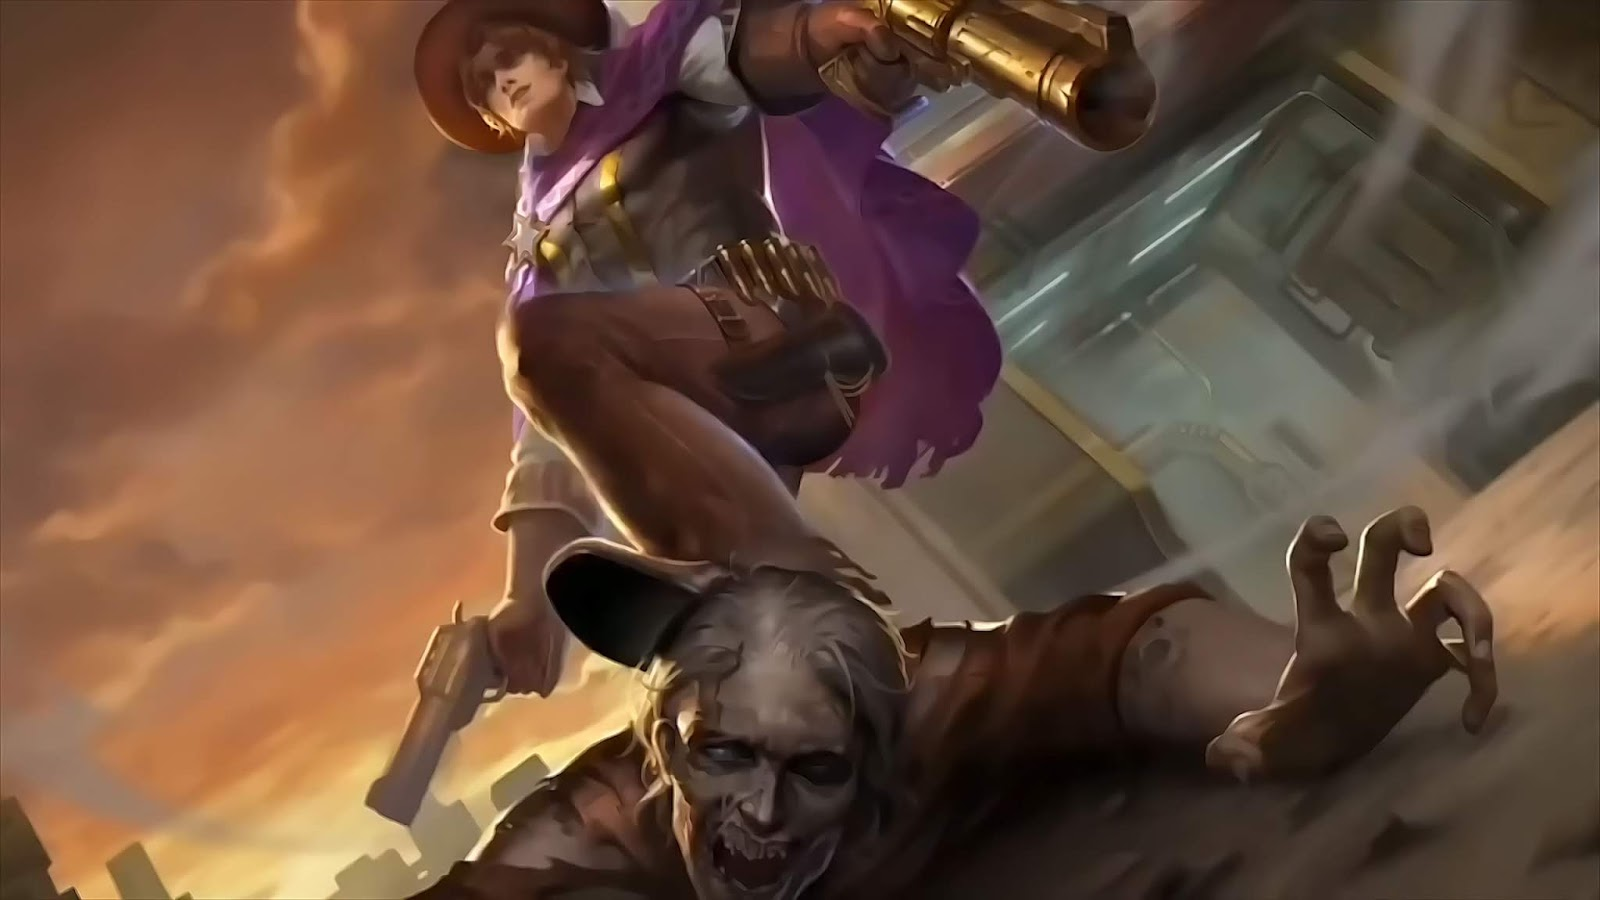 Wallpaper Clint Wasteland Drifter Old Skin Mobile Legends HD for PC